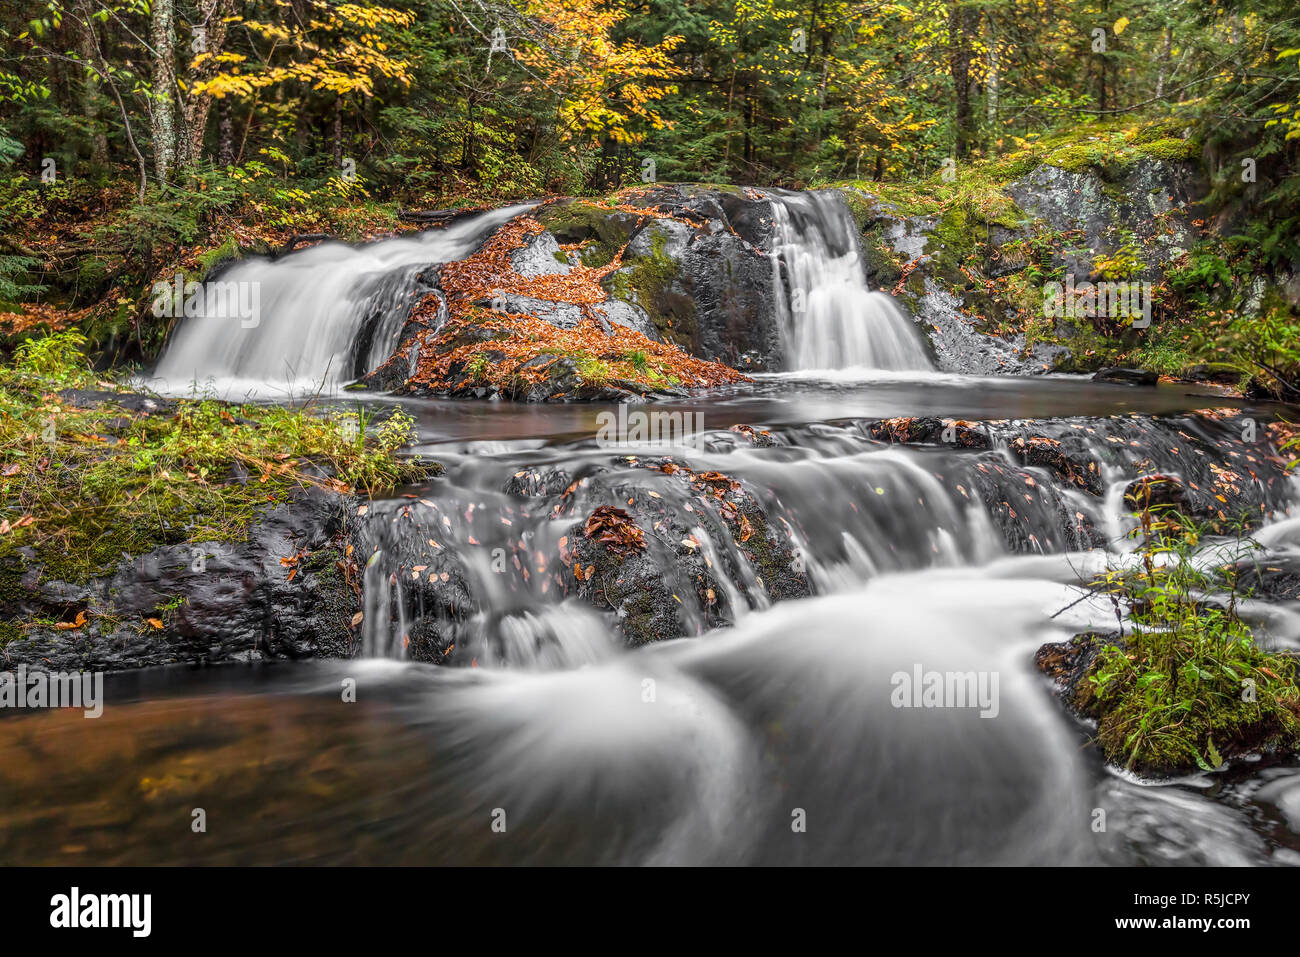 Lower Duppy Falls flows over leaf-covered volcanic rocks in a beautiful remote autumn wood of Michigan's western Upper Peninsula. Stock Photo